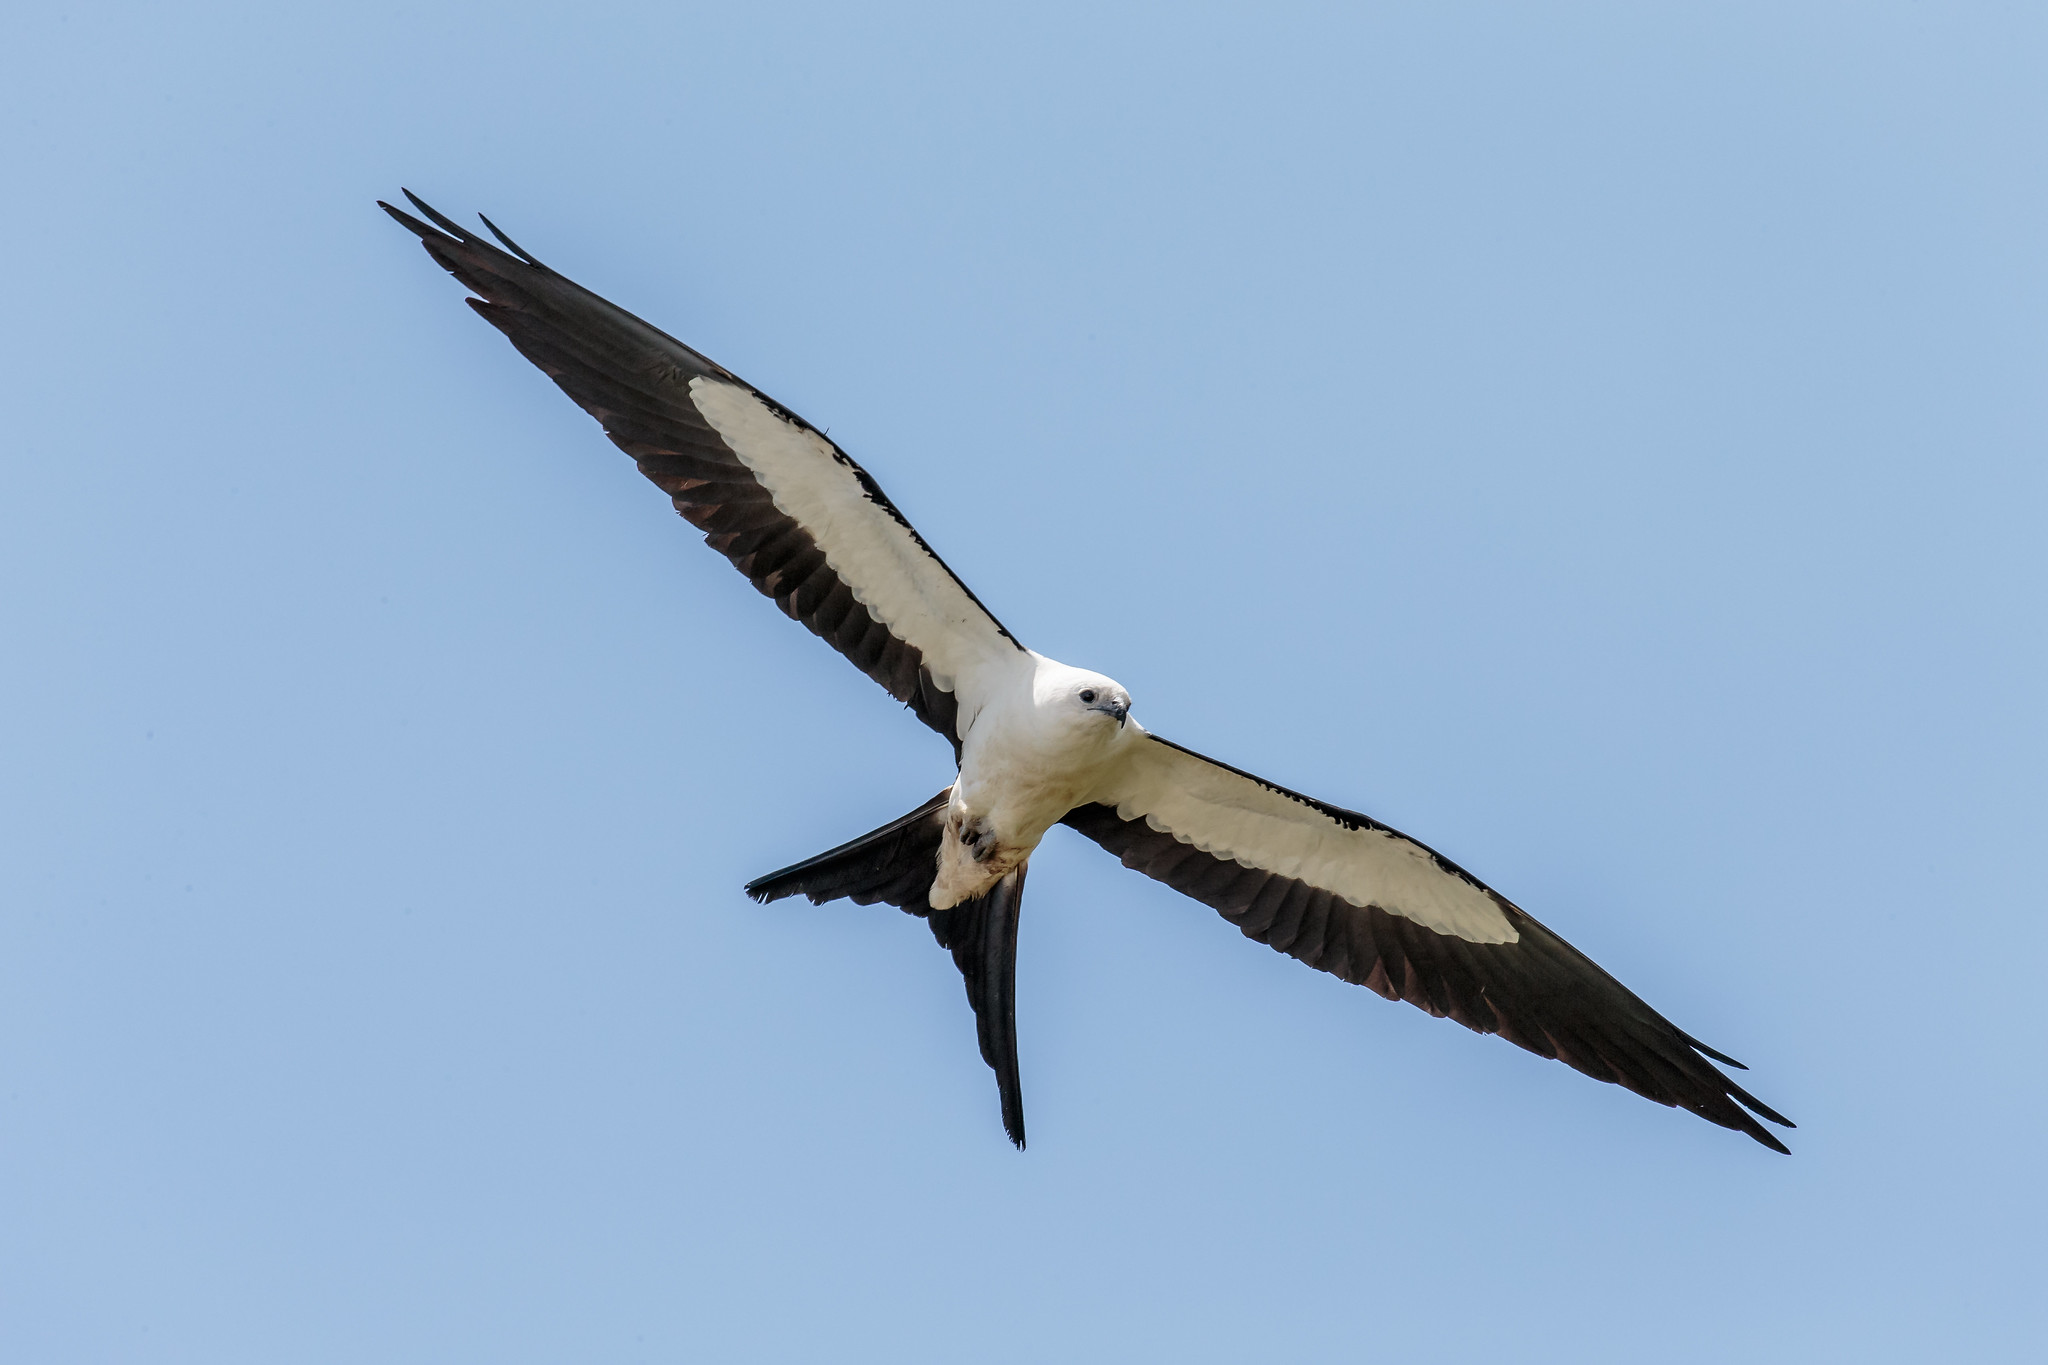 Swallow-tailed kite in flight.